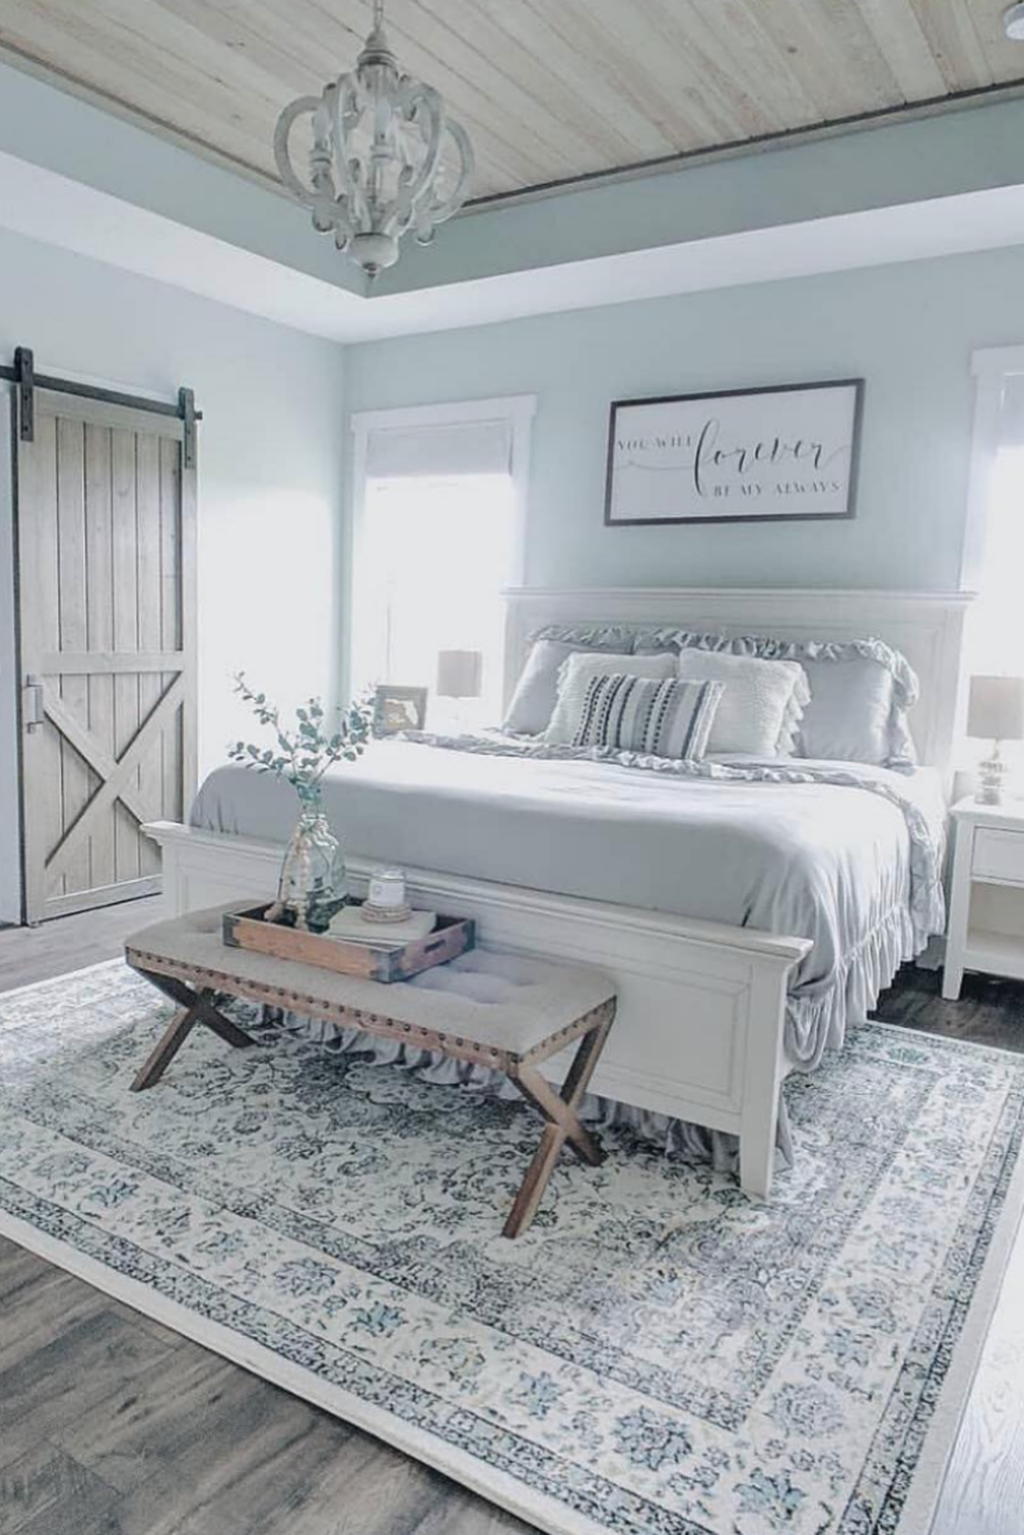 Amazing Farmhouse Style Master Bedroom Design And Decor Ideas Hoomcode Farmhouse Style Master Bedroom Rustic Master Bedroom Master Bedrooms Decor